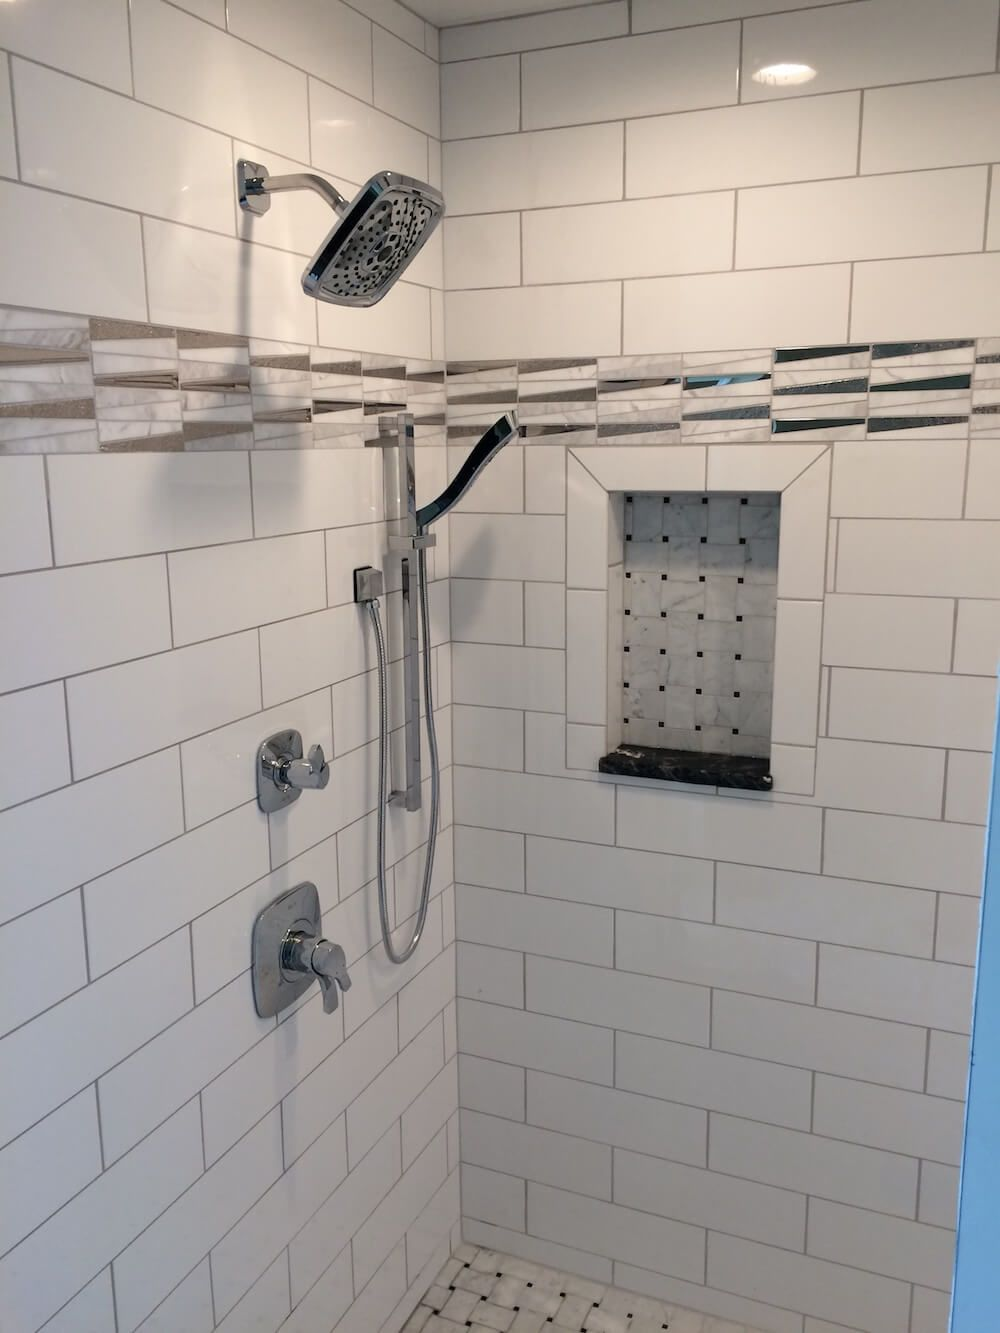 2017 Regrouting Shower Tile Cost Regrout Shower Price With Images